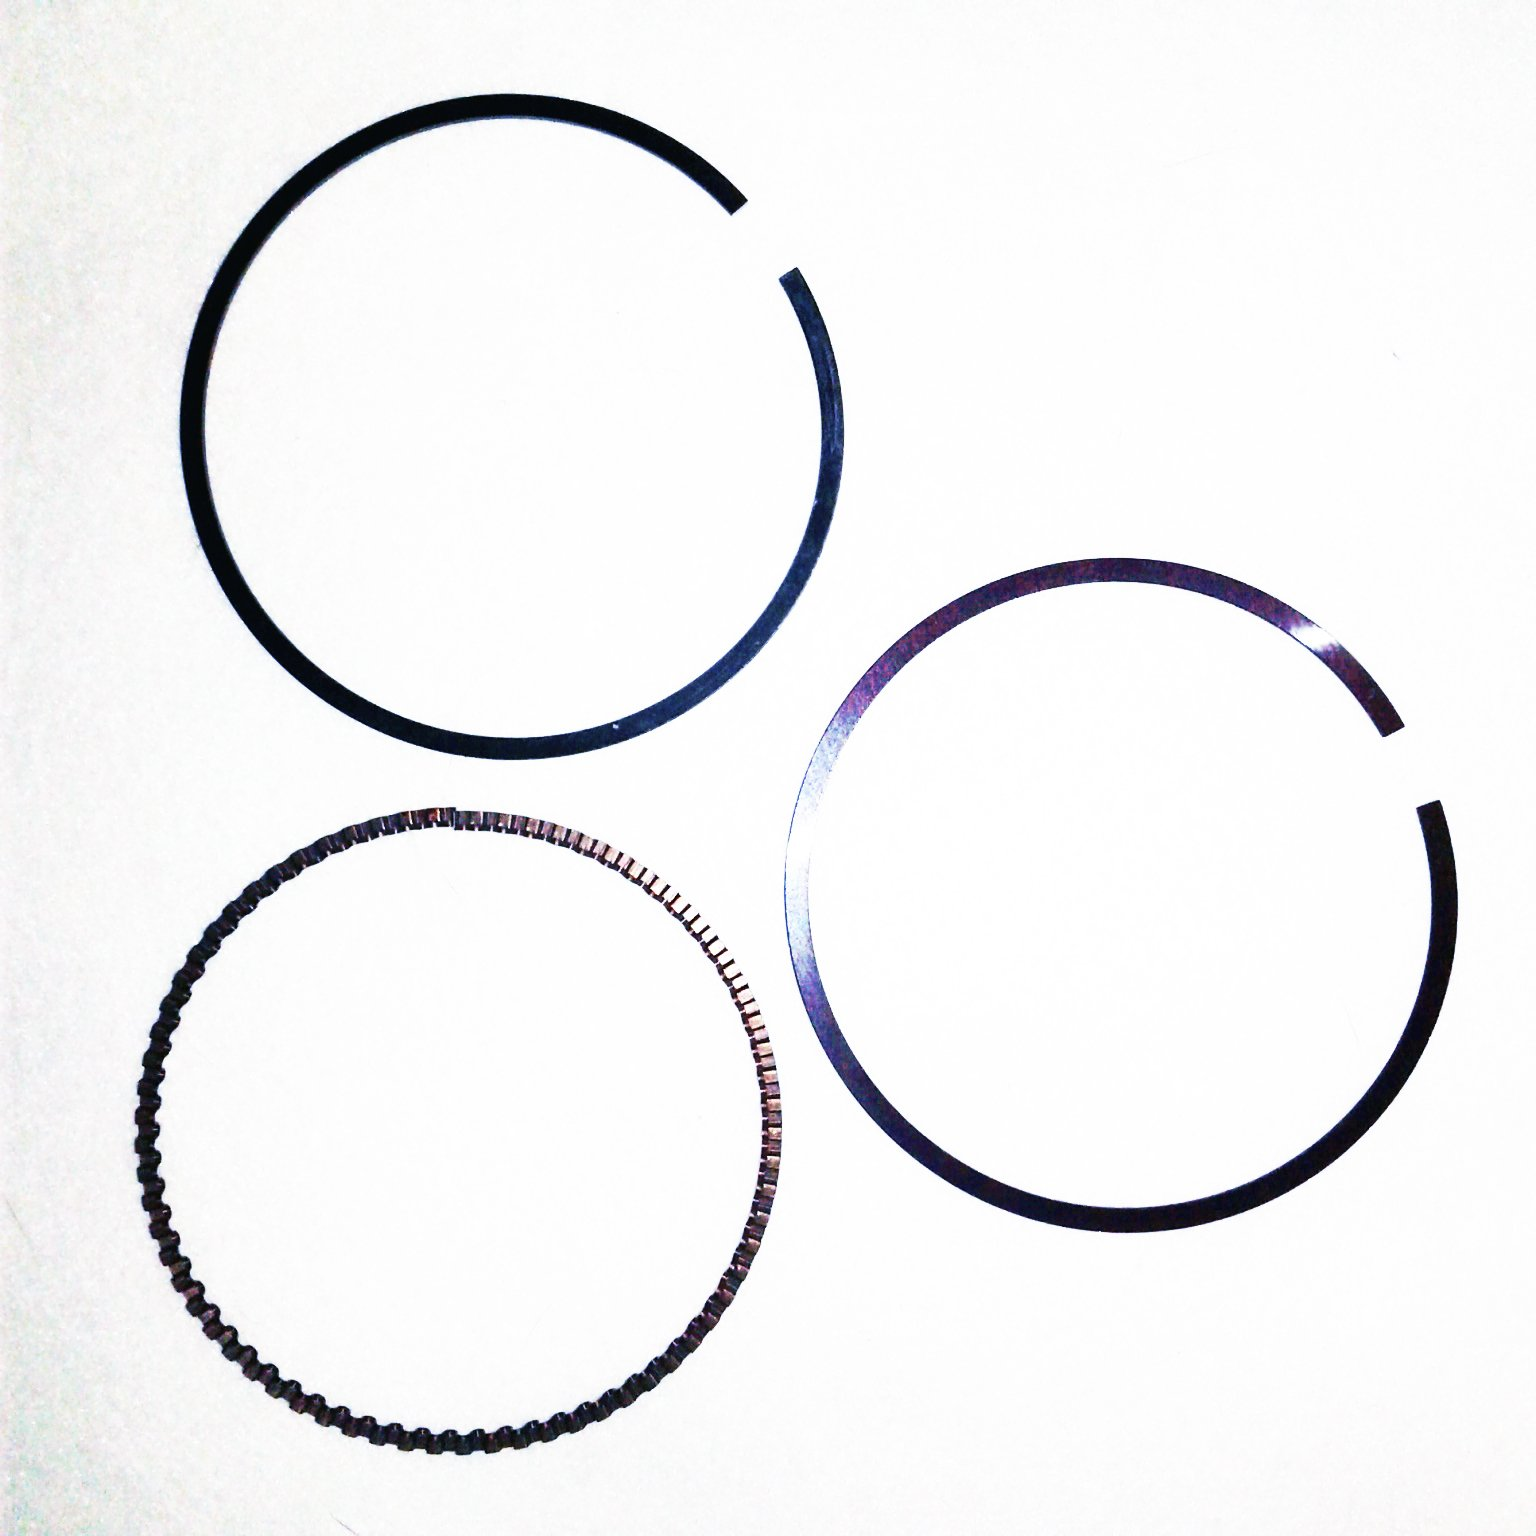 Honda 13010-Z0Y-014 Ring Set (Std)